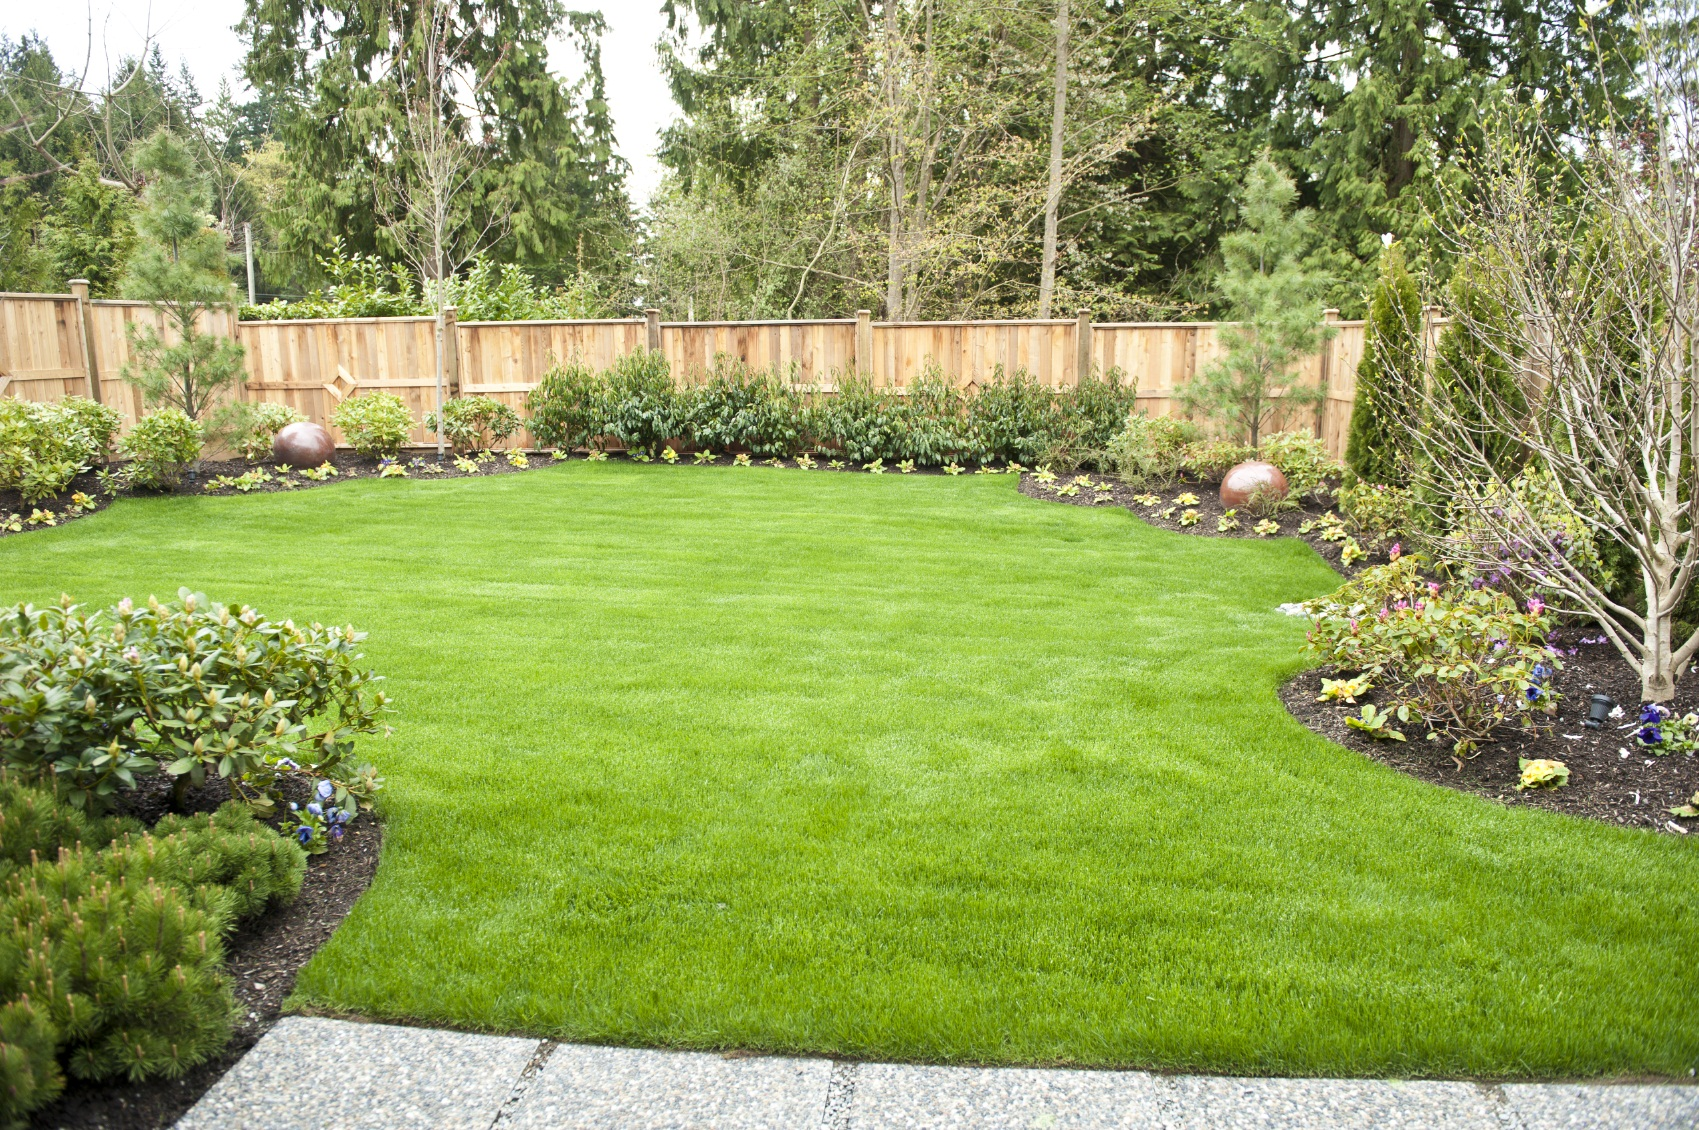 Backyard landscaping tips metamorphosis landscape design for Design your backyard landscape